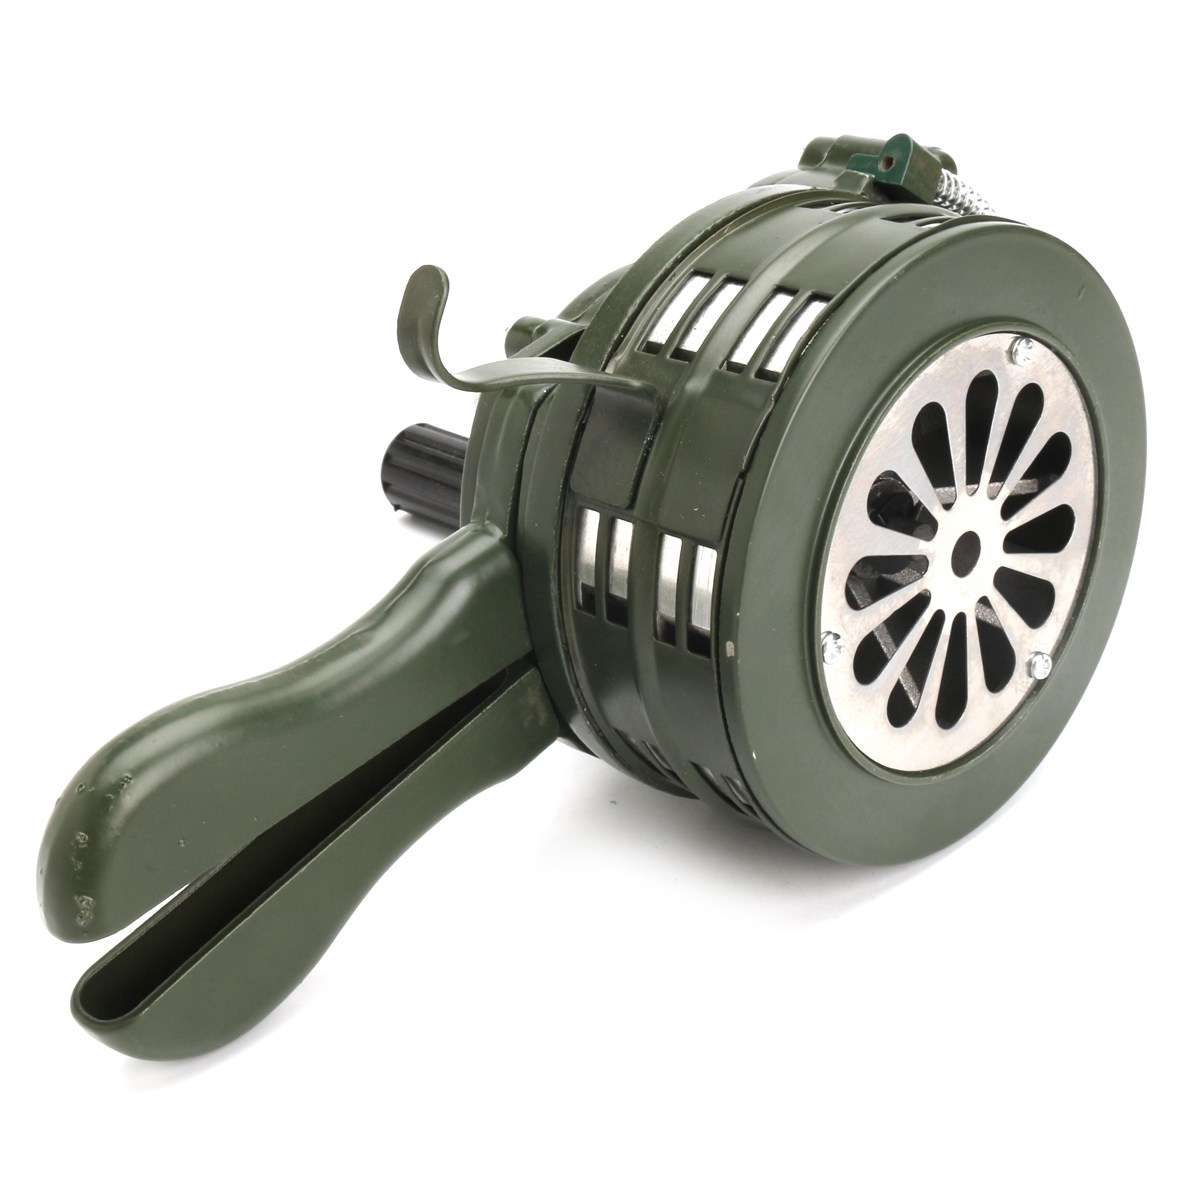 FGHGF Green Aluminium alloy Crank Hand Operated Air Raid Emergency Safety Alarm Siren Home Self Protection Security Alarm Siren ac110v 160db motor driven air raid siren metal horn industry boat alarm